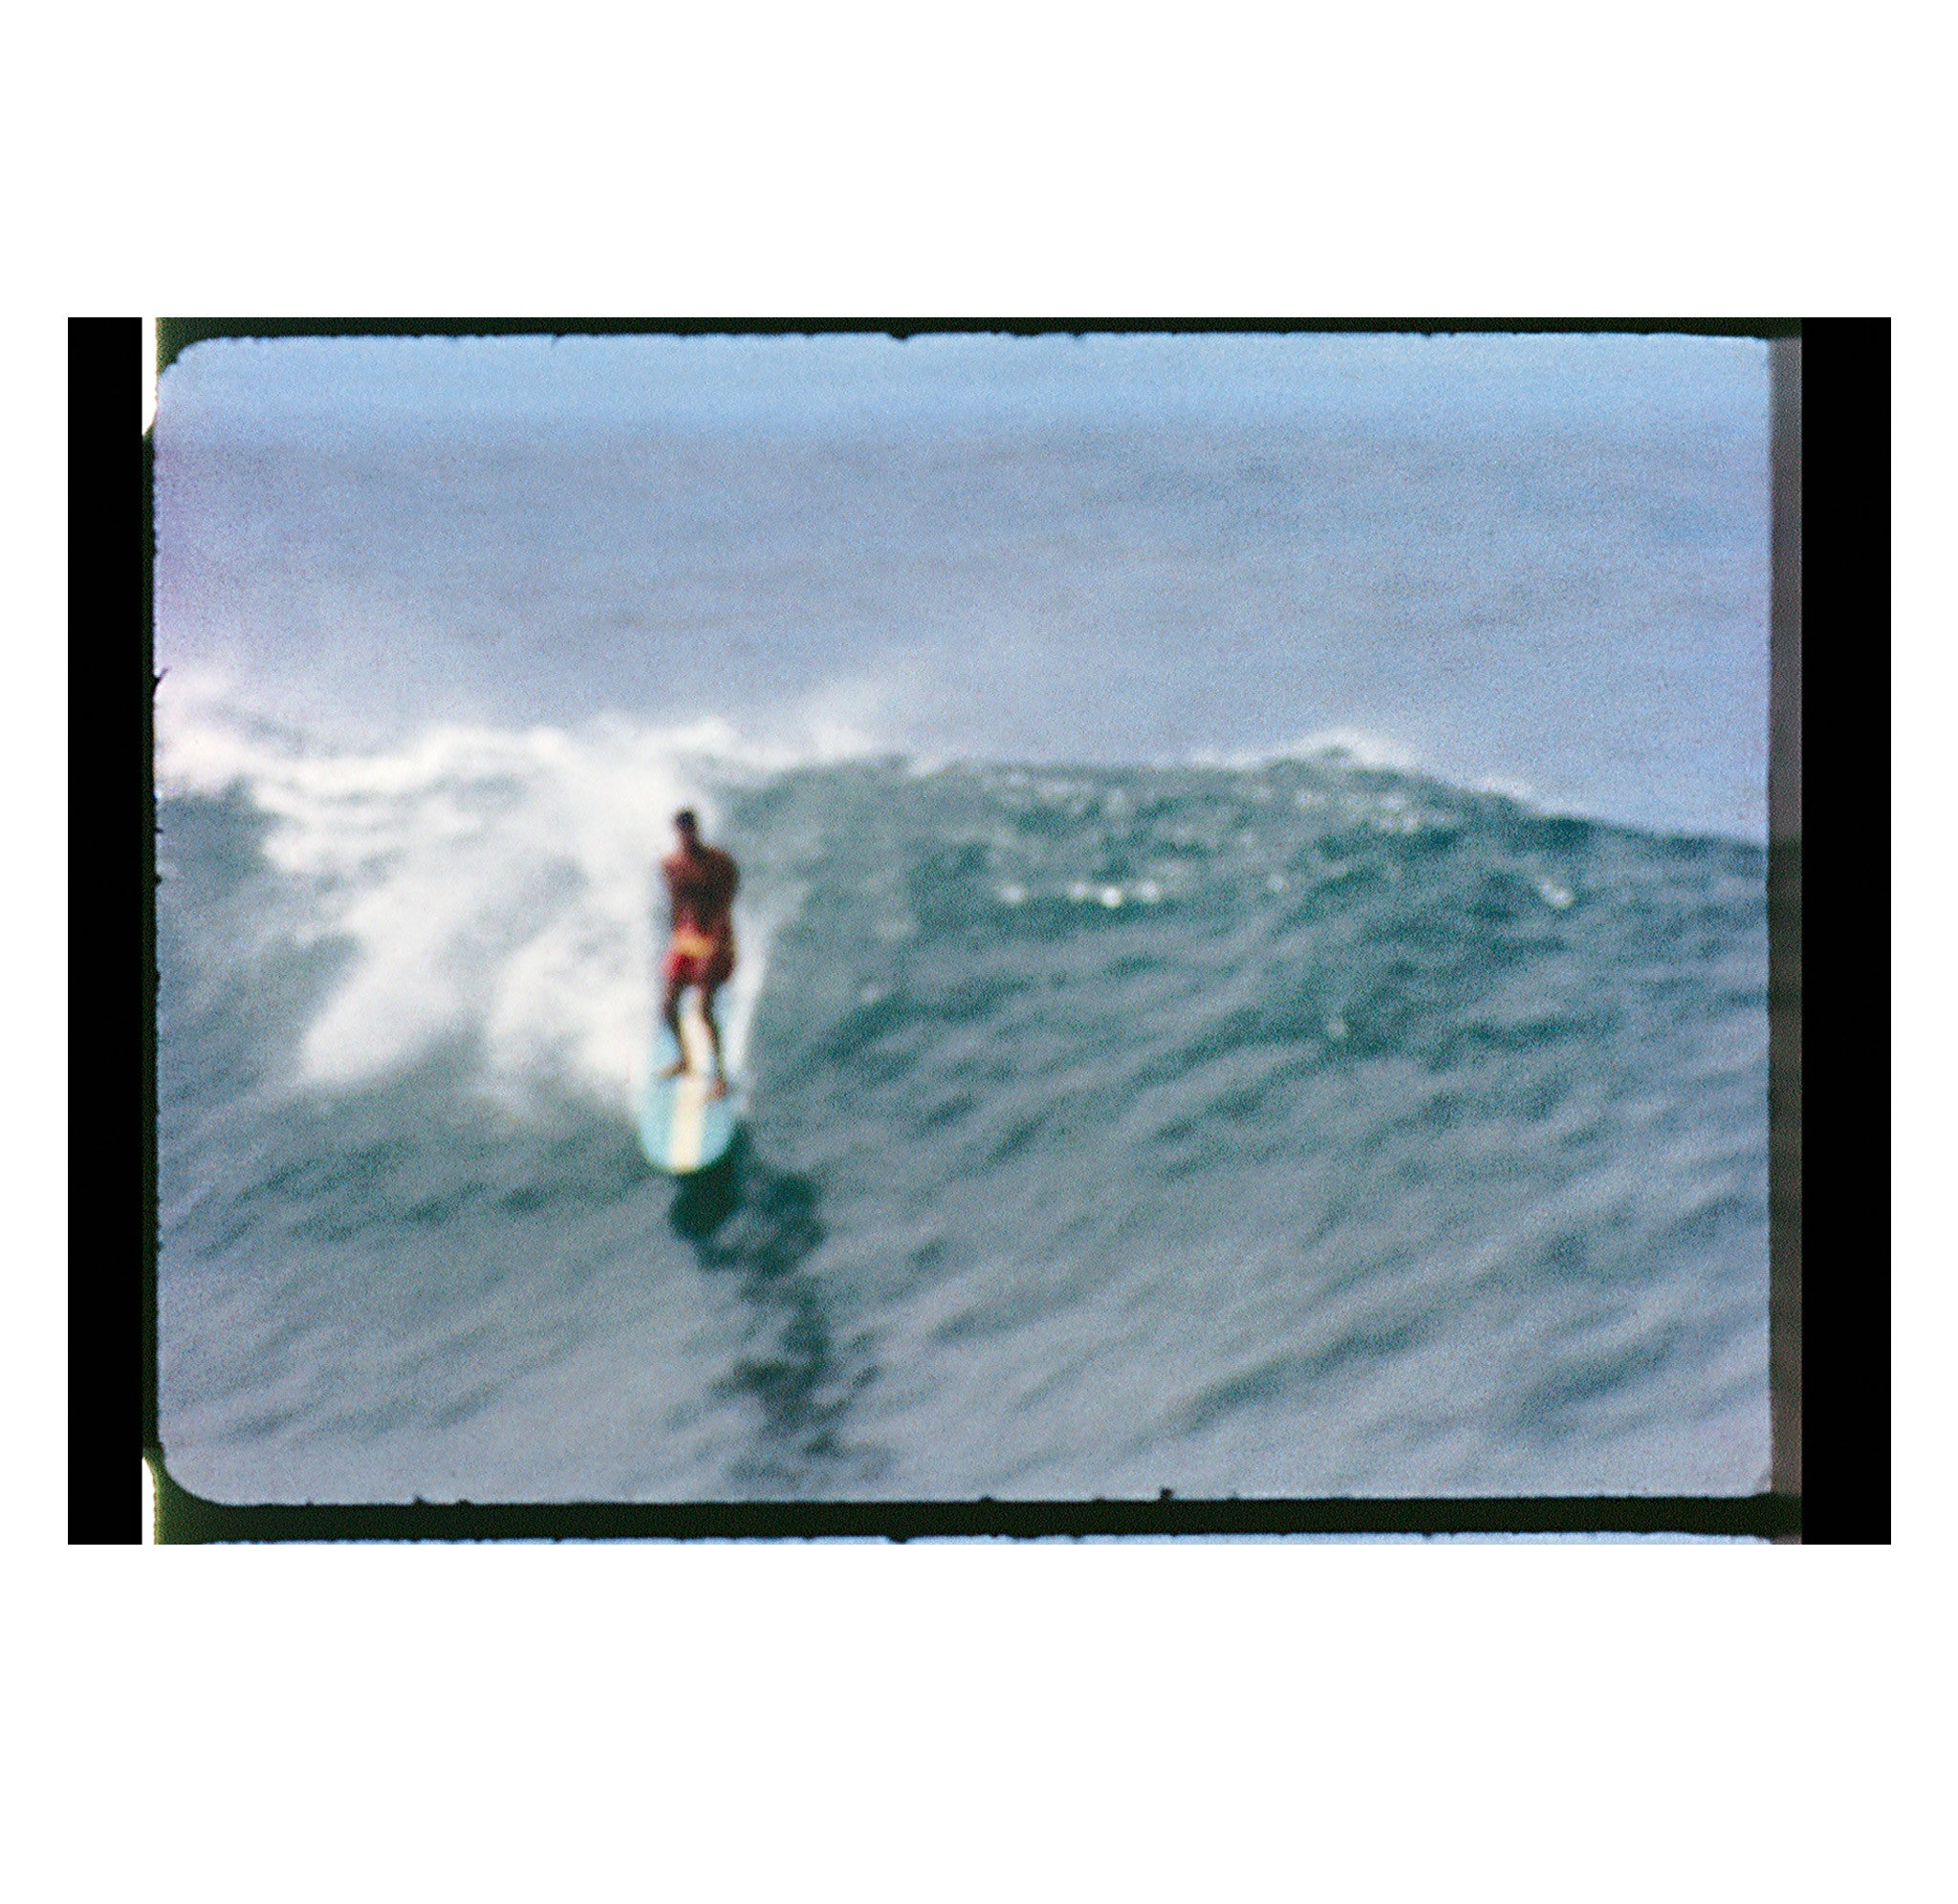 Grant Rohloff – Miki Dora, North Shore 1